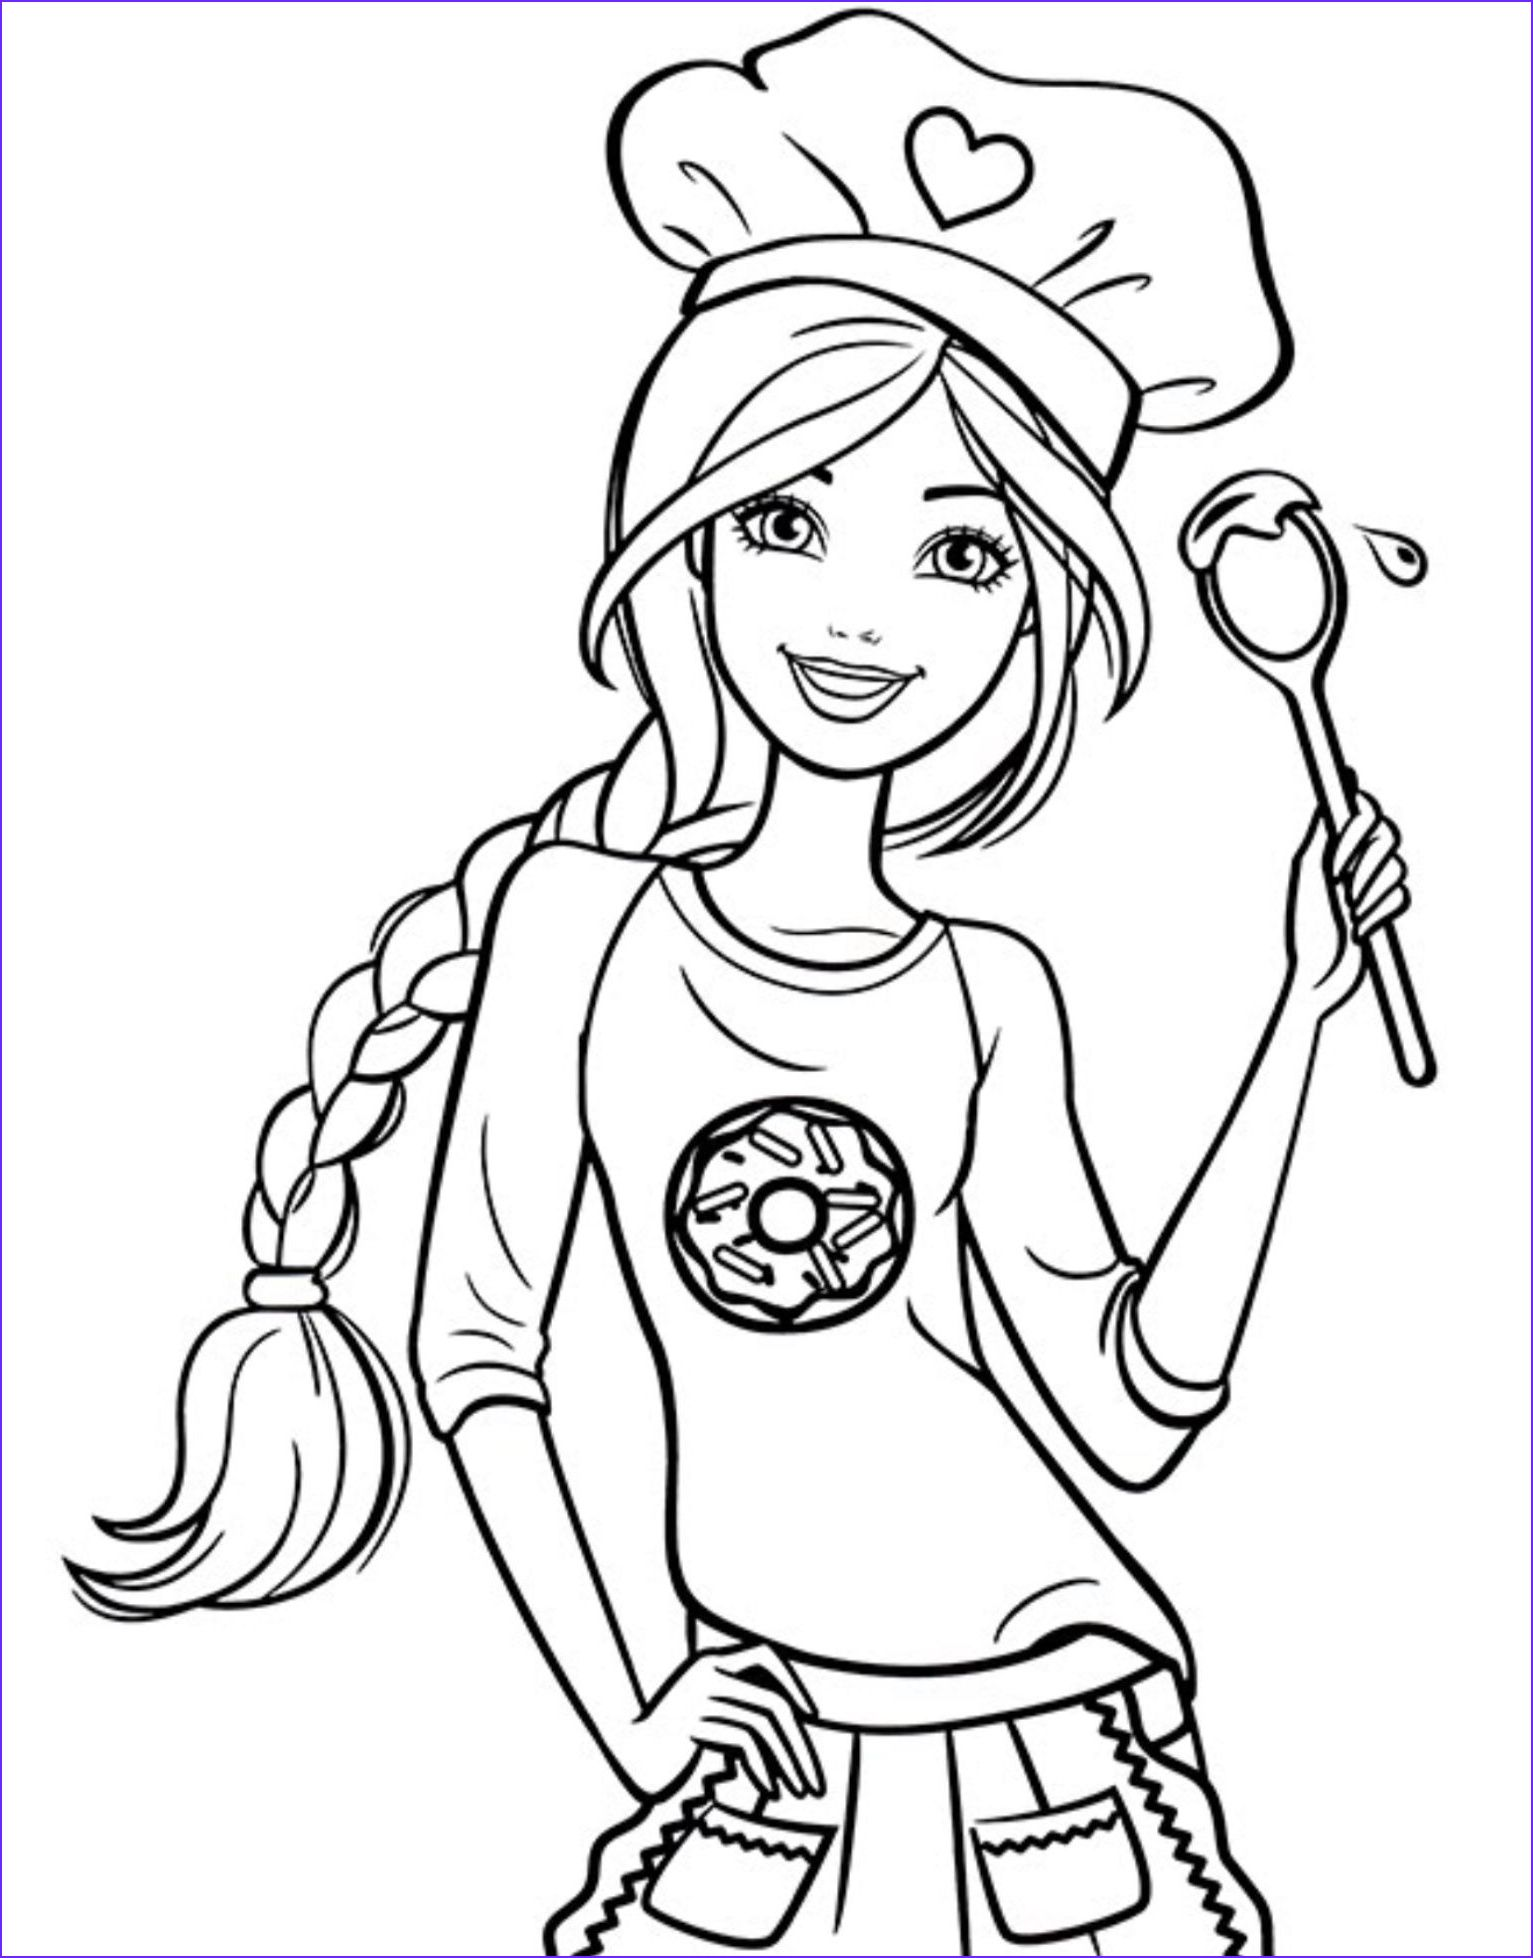 20 Elegant Barbie Coloring Pages Collection  Barbie coloring pages